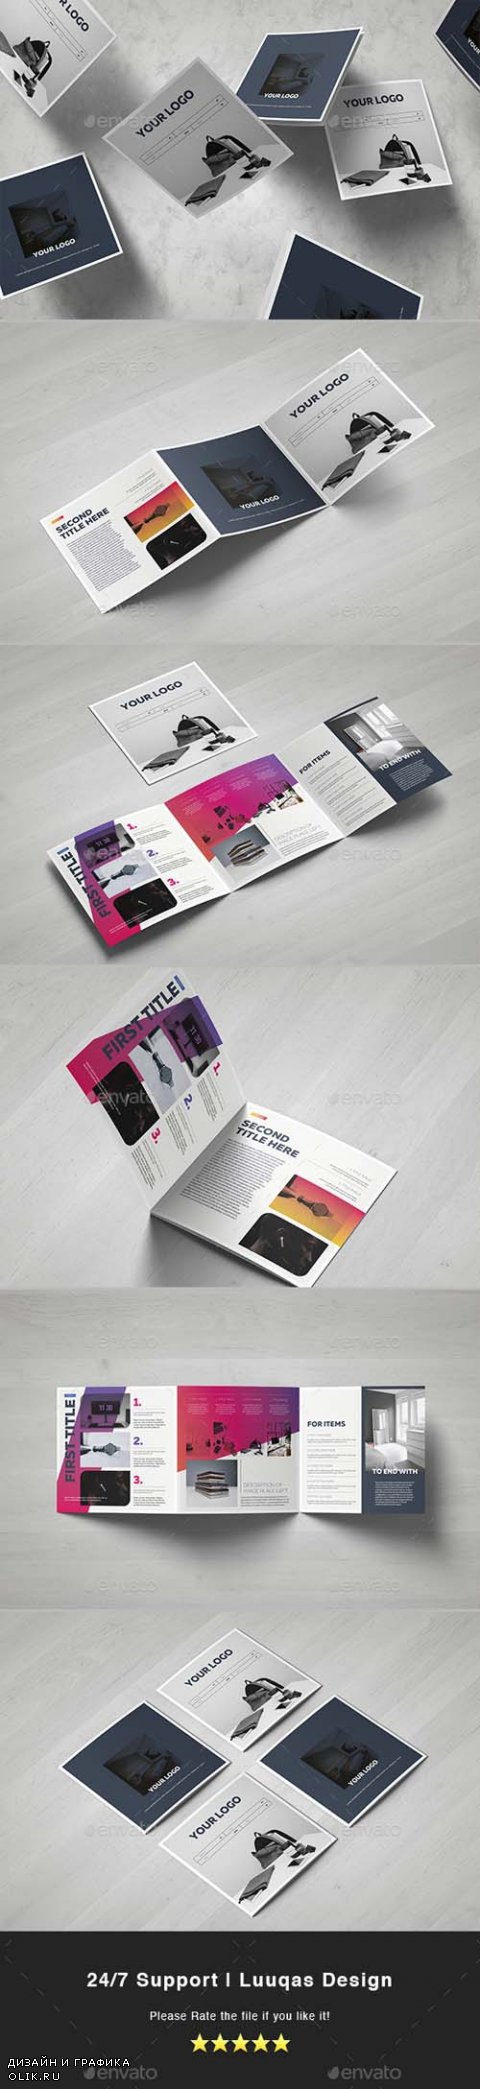 Gradient Square Trifold Template 17977672